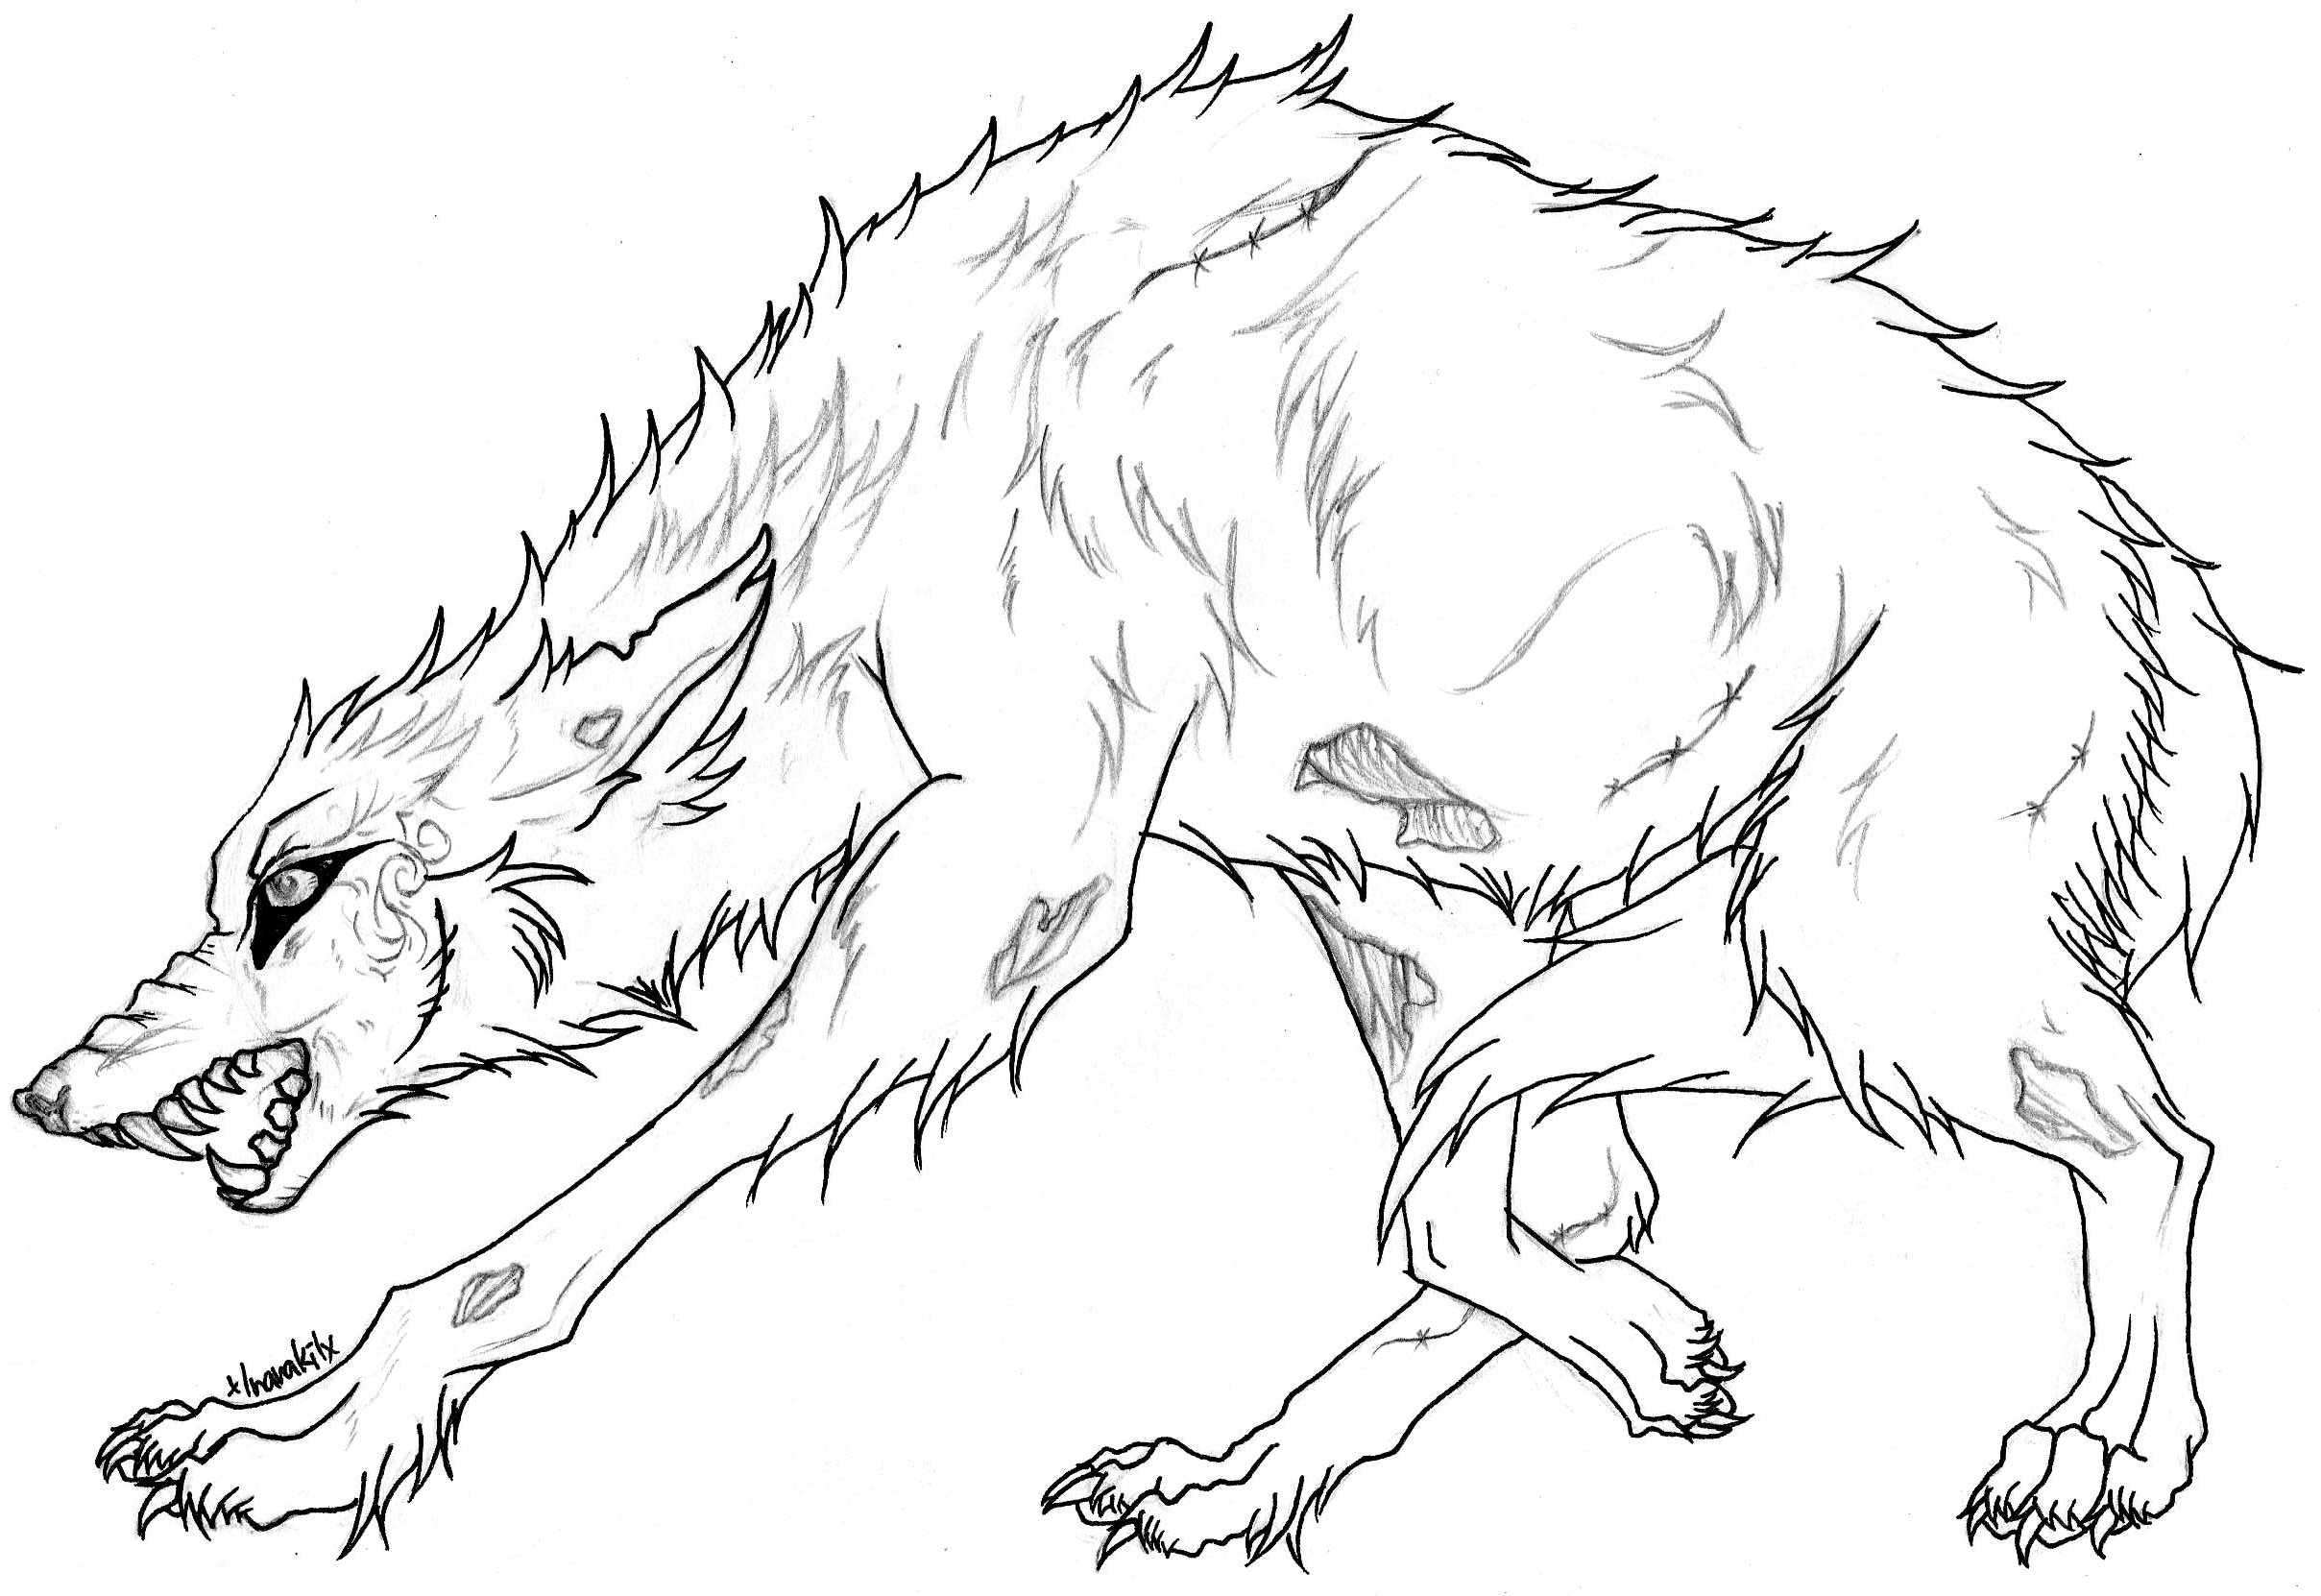 Best Angry Wolf Coloring Pages Free 2228 Printable Coloringace to Print Of Wolves Coloring Pages Wolf Coloring Pages Free Coloring Pages Collection